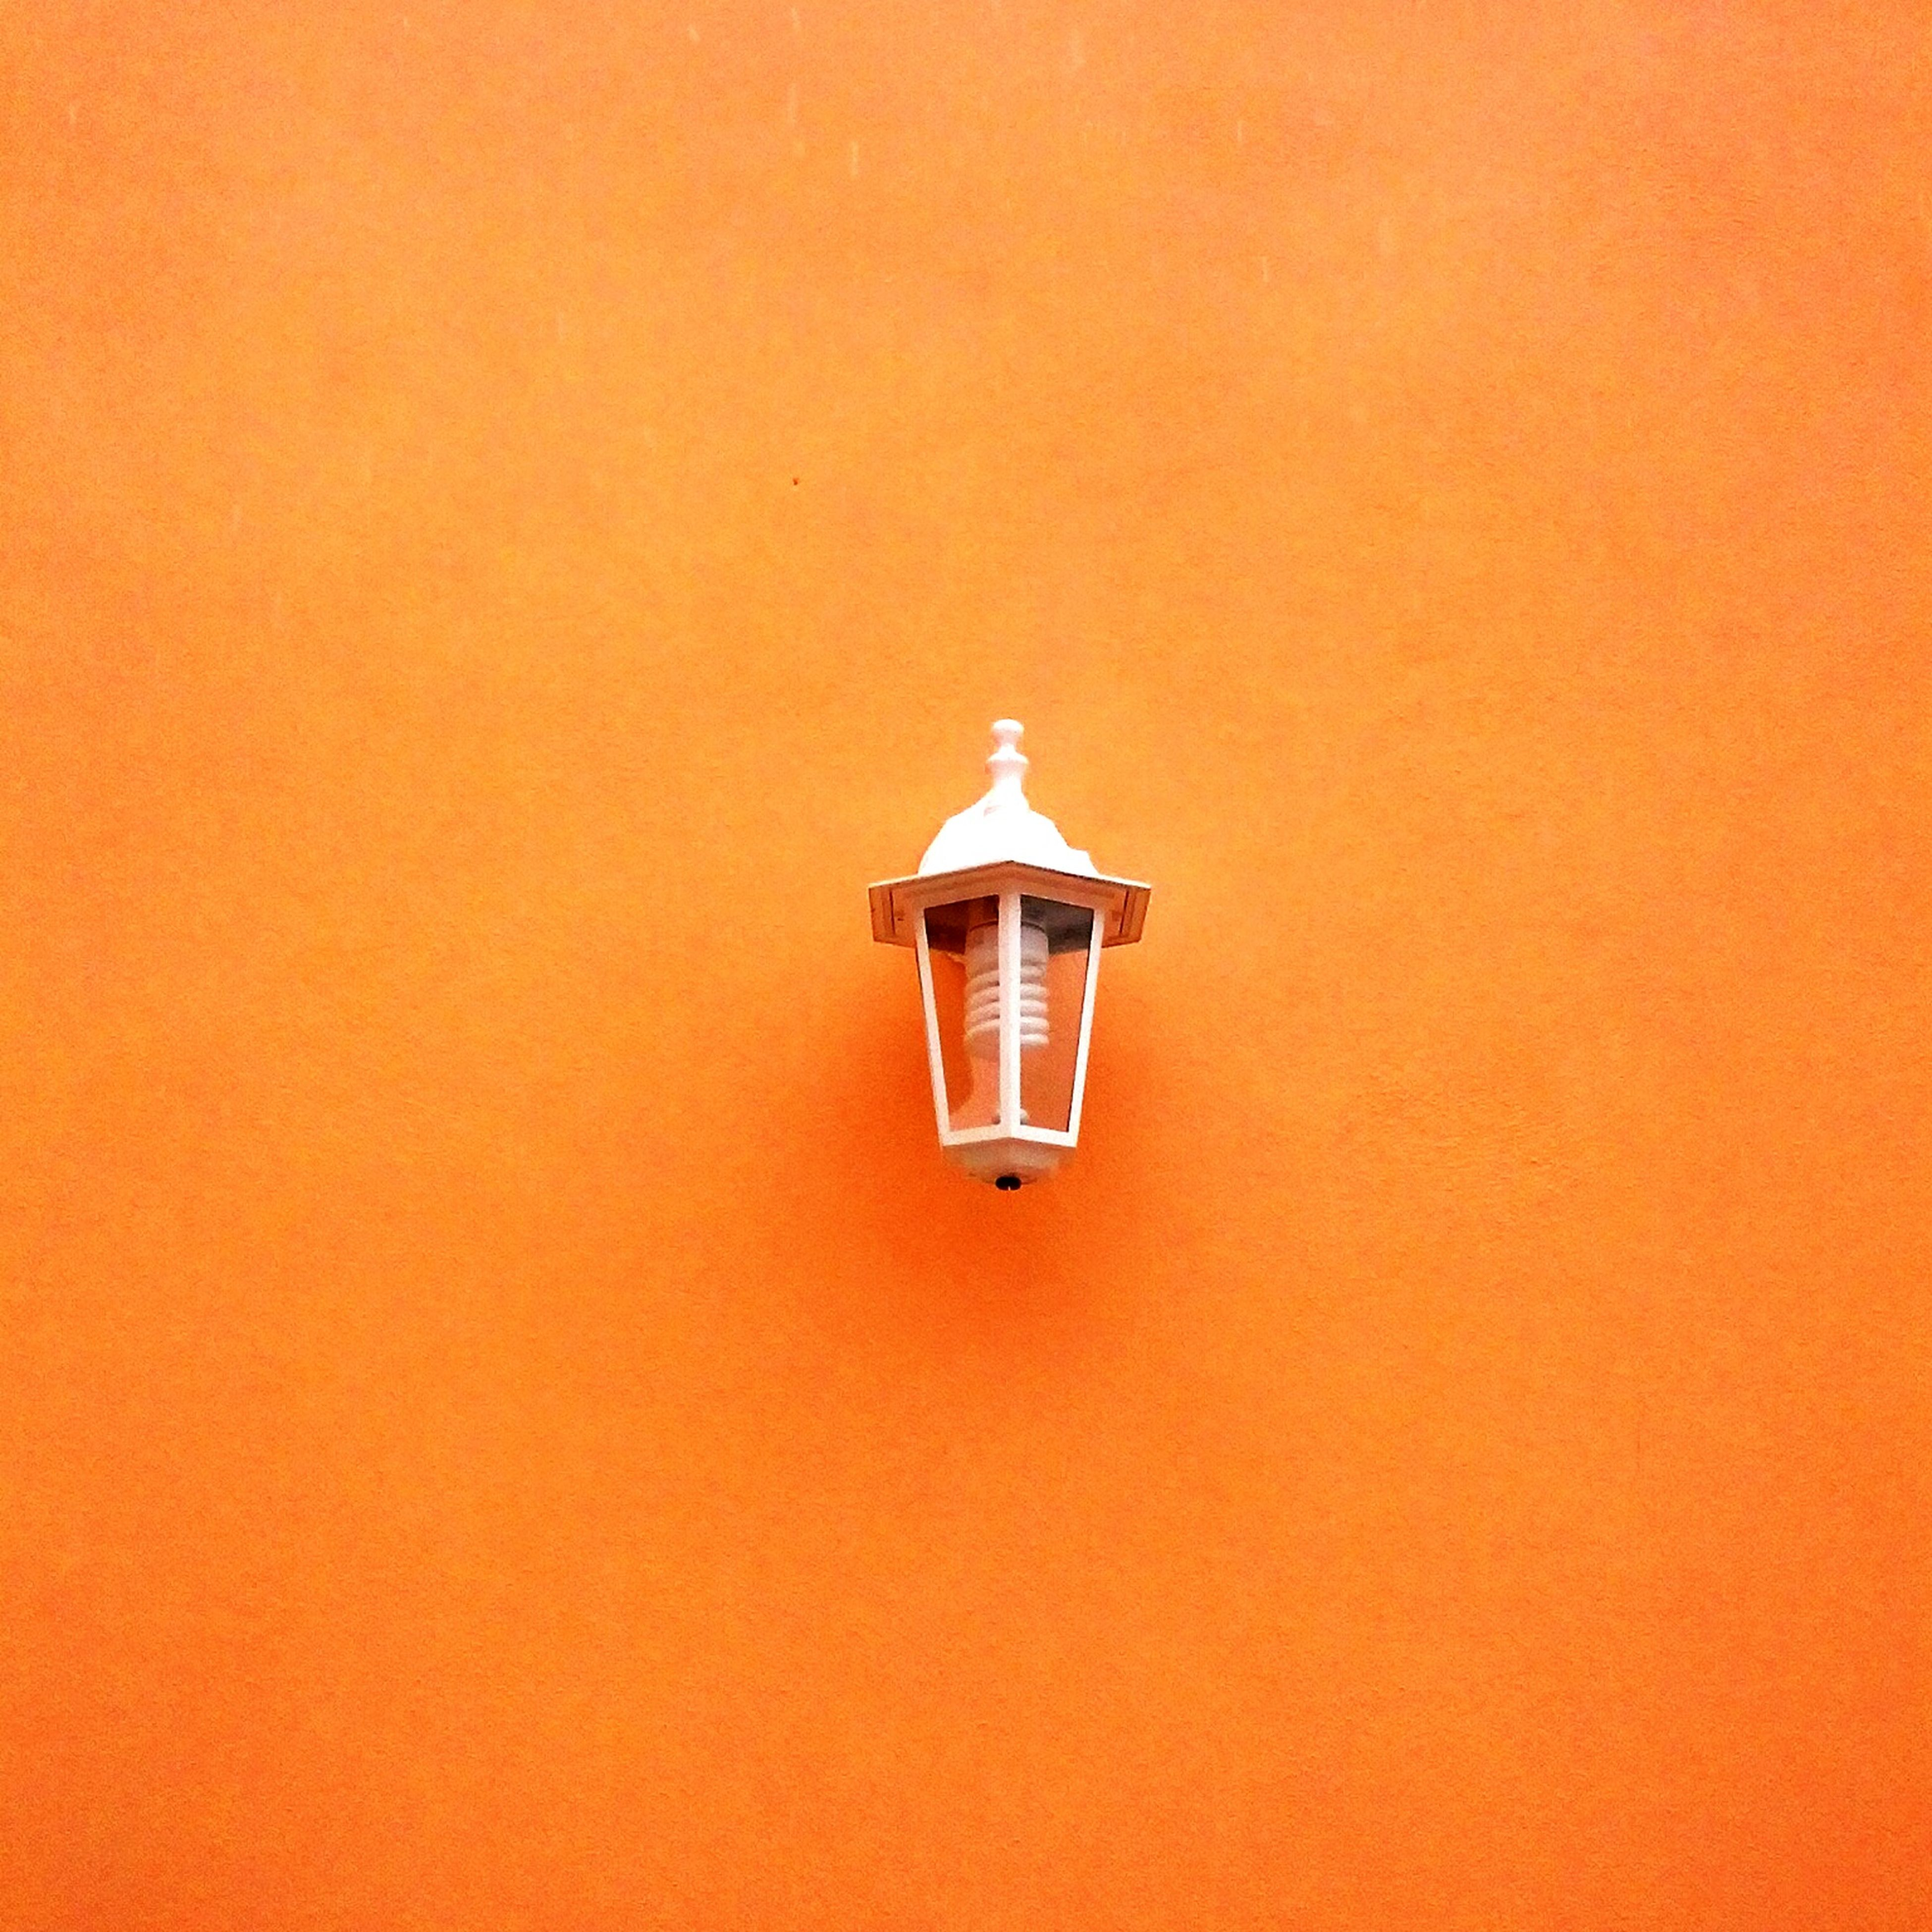 lighting equipment, copy space, low angle view, illuminated, electricity, wall - building feature, indoors, lamp, electric light, orange color, built structure, electric lamp, light bulb, lantern, close-up, single object, architecture, hanging, no people, wall